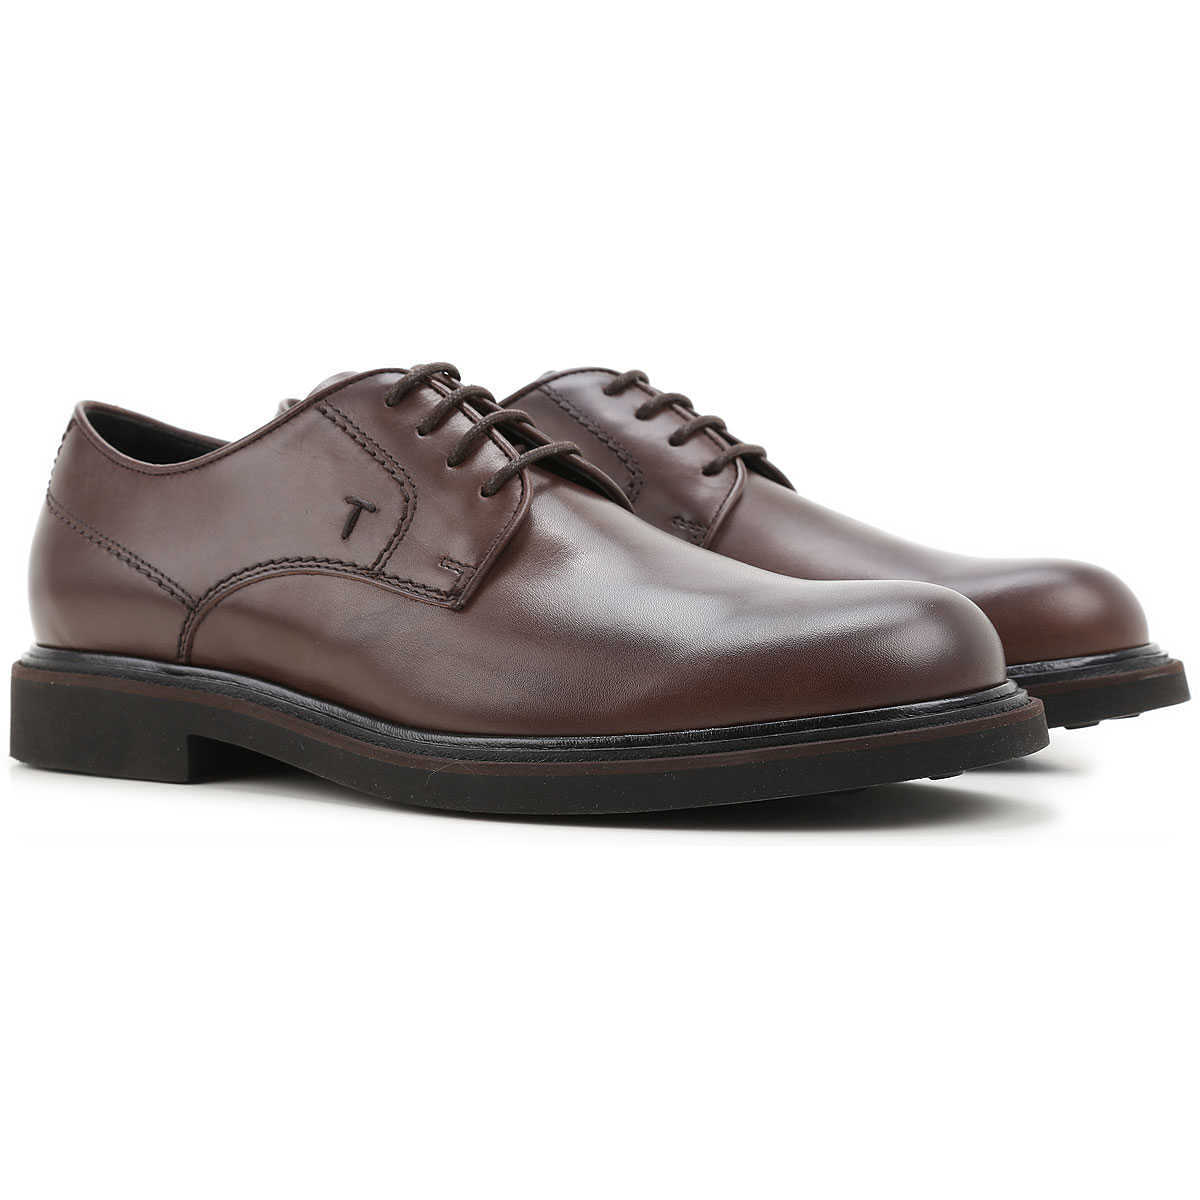 Tods Lace Up Shoes for Men Oxfords 6 7.5 Derbies and Brogues On Sale UK - GOOFASH